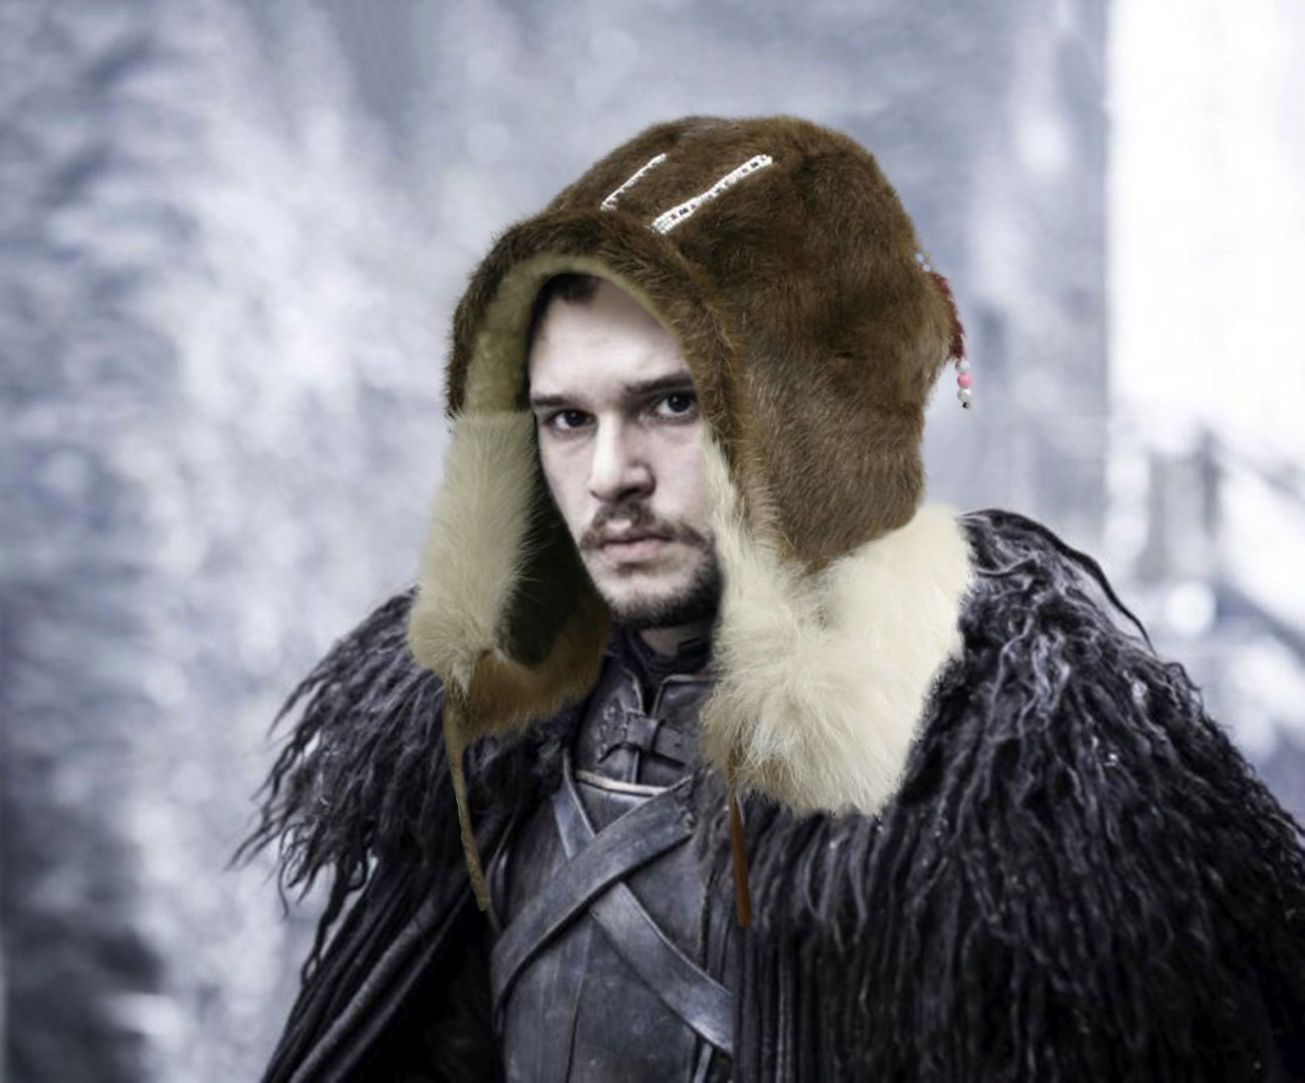 Jon Snow, game of thrones, moesgaard, ethnography, the wall